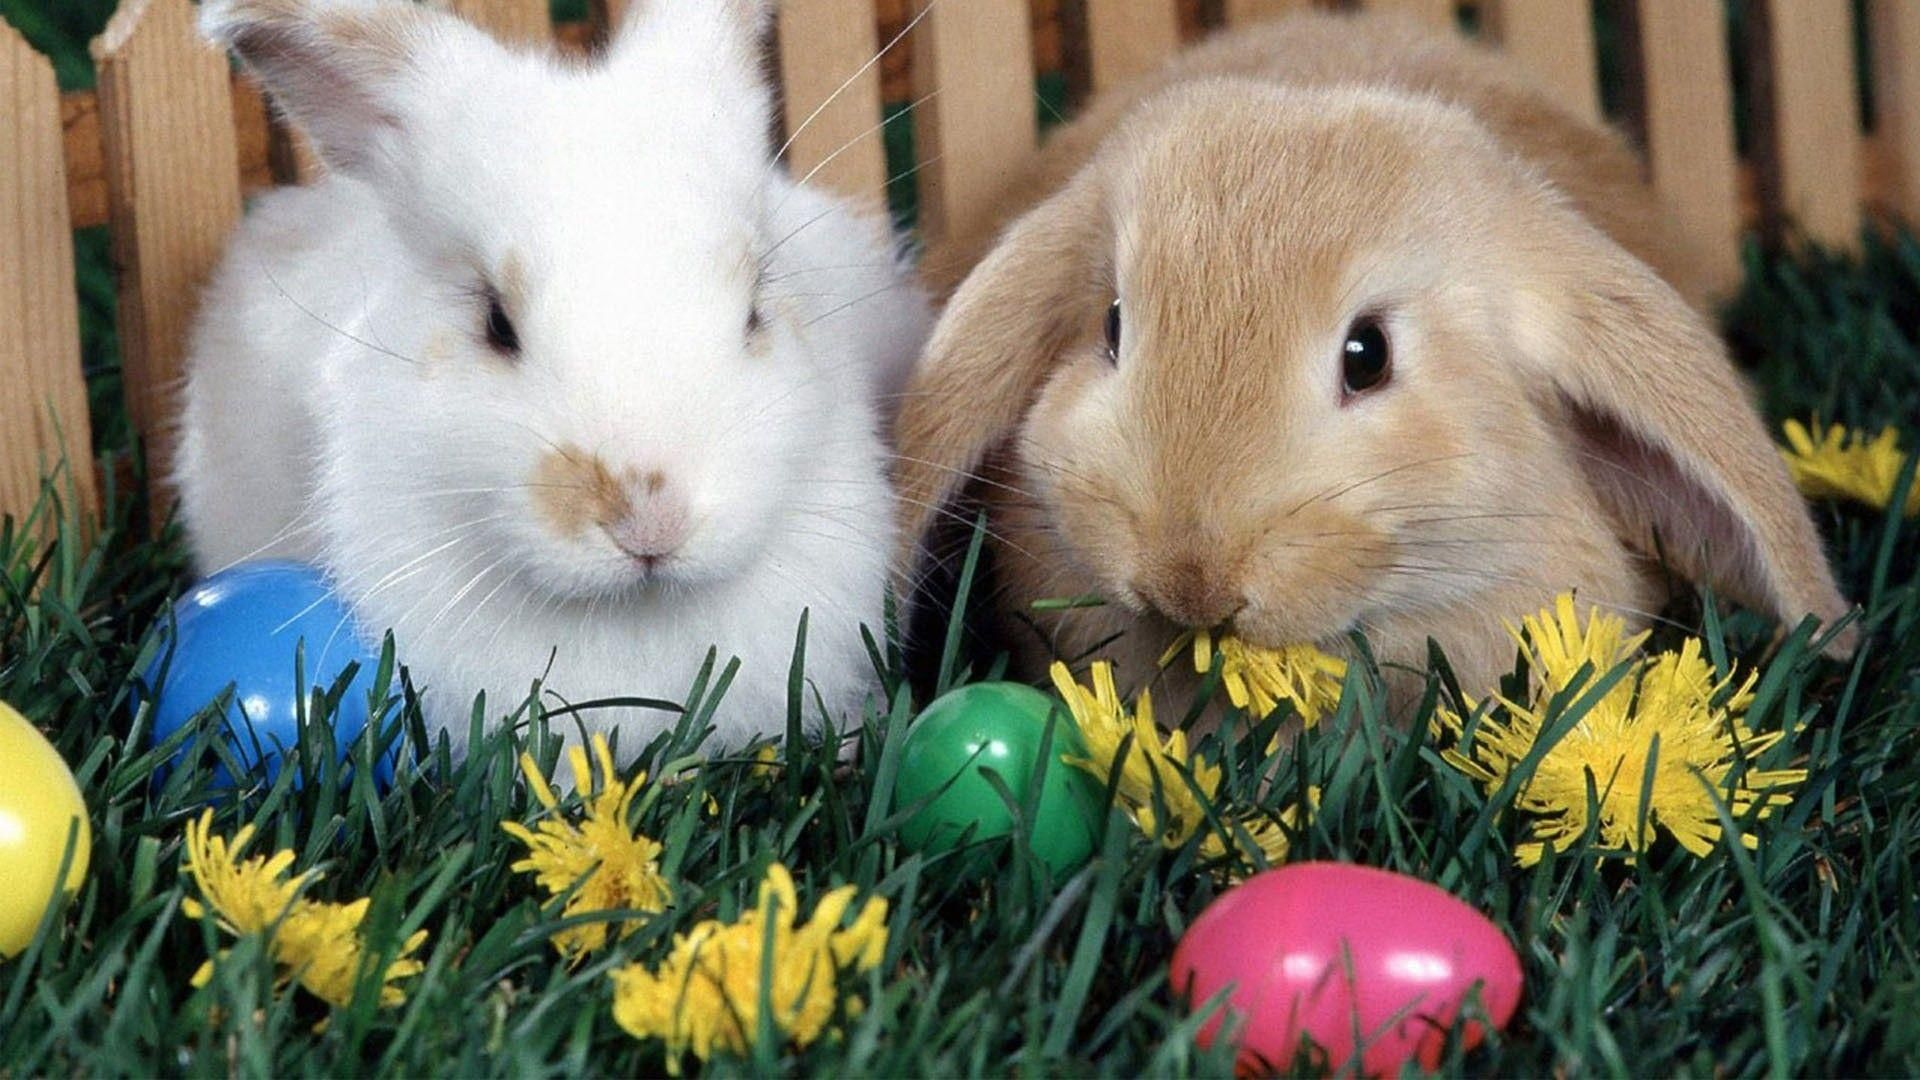 Easter Bunny Wallpaper Free Download Cute Easter Pictures Easter Wallpaper Easter Bunny Images